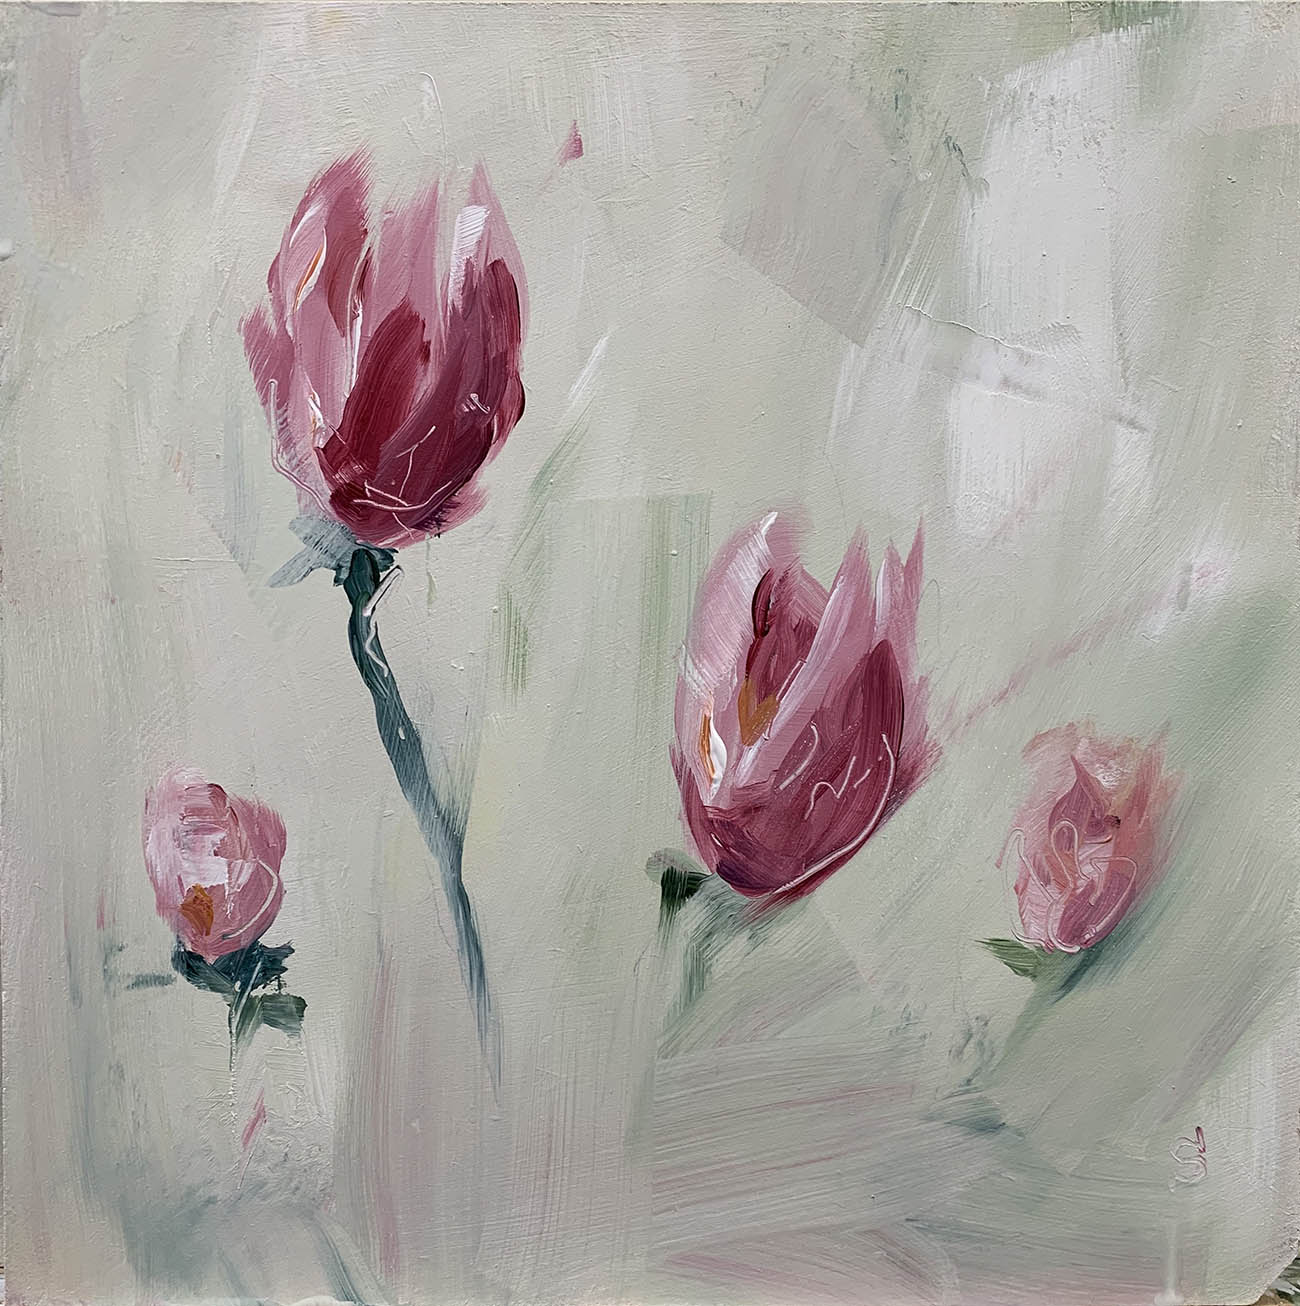 Tulip botanical in acrylic by artist Michael Statham